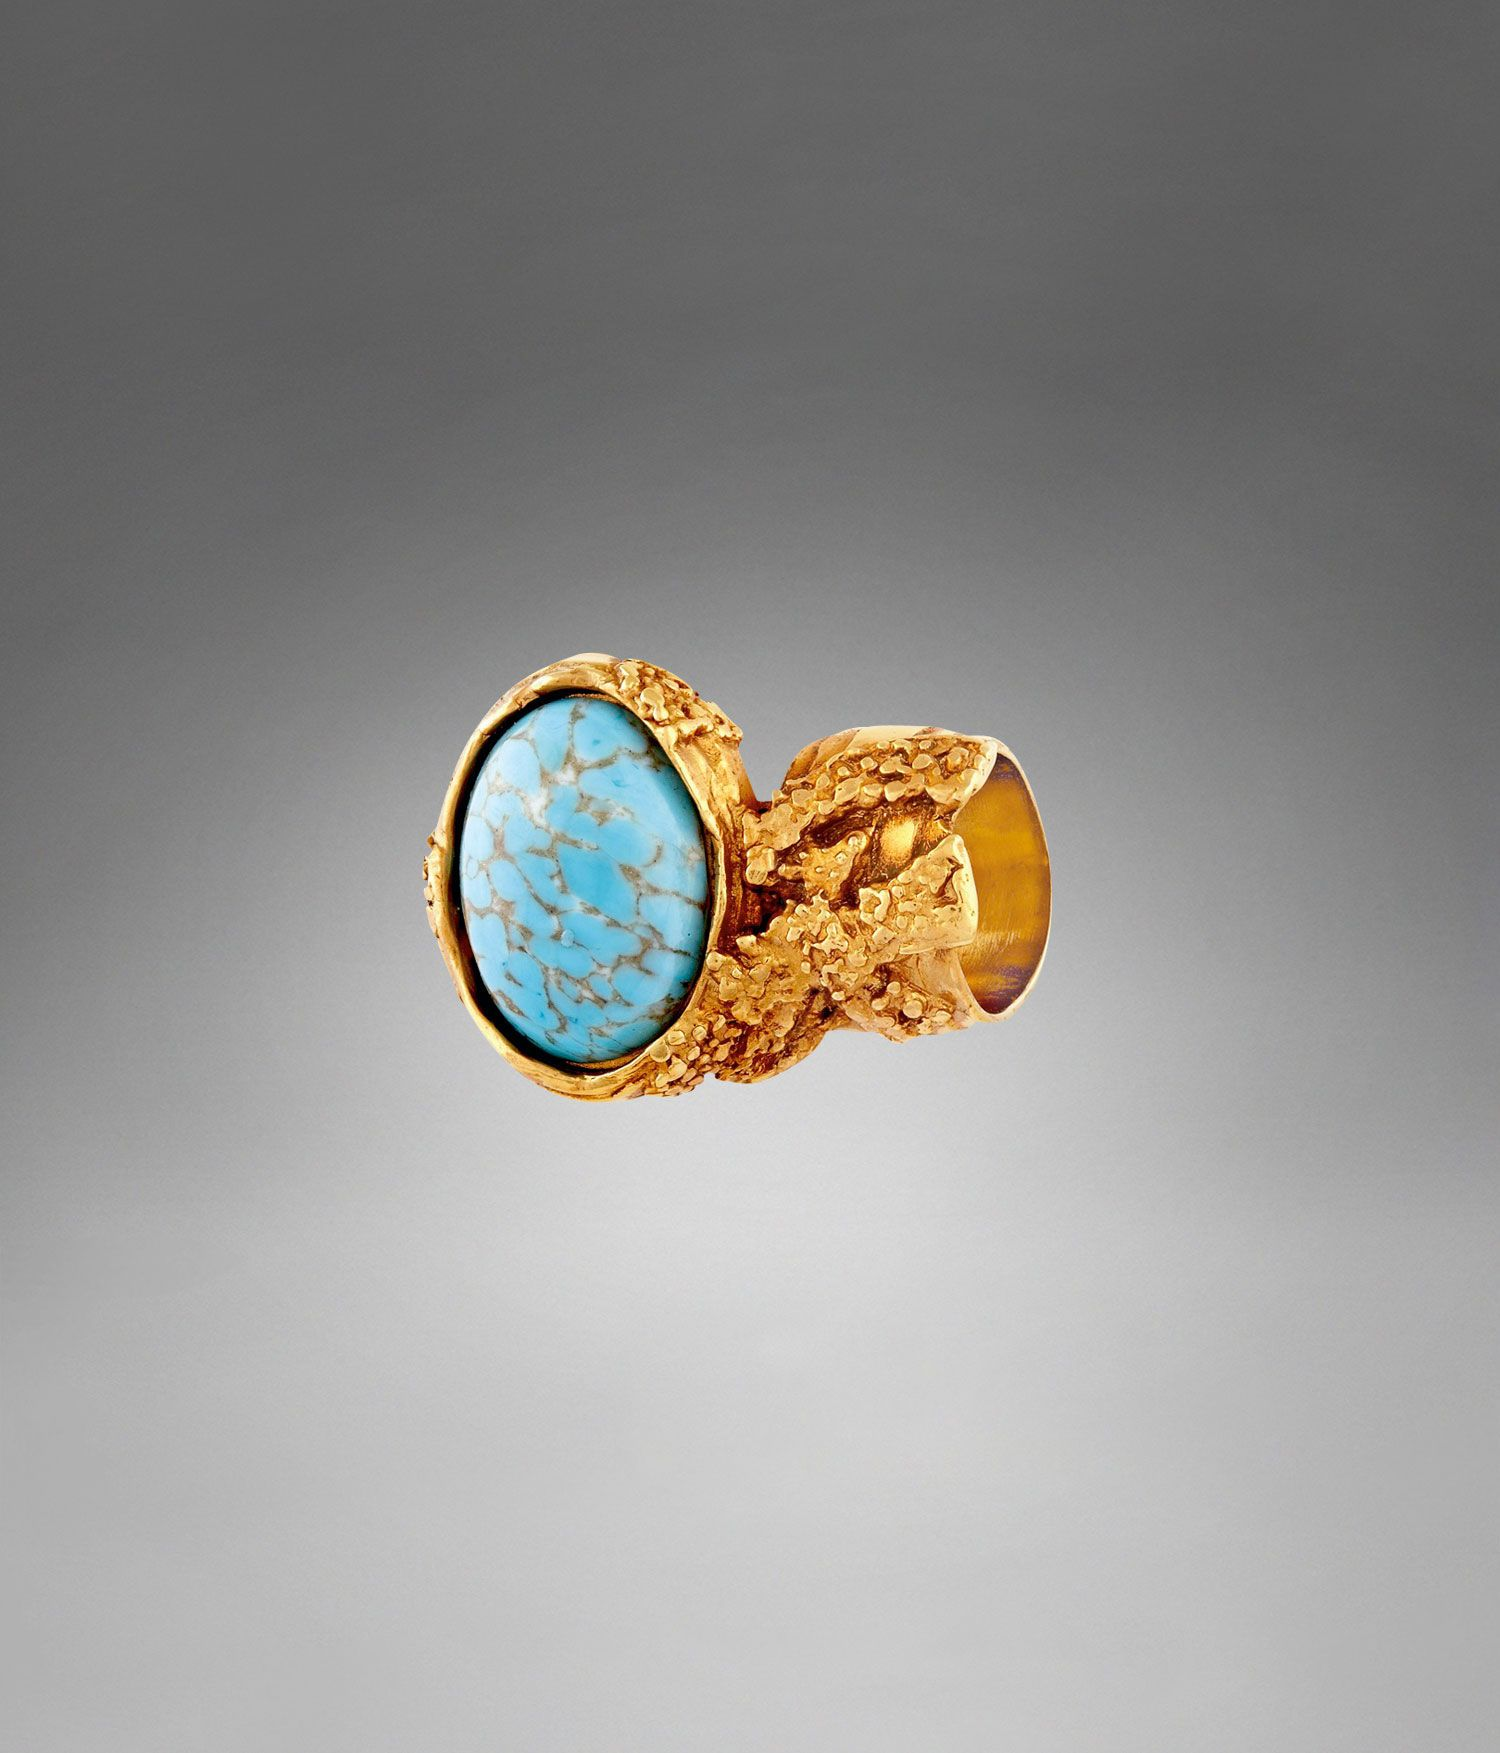 chronicles bowl canal history new receive saints super orleans street rings